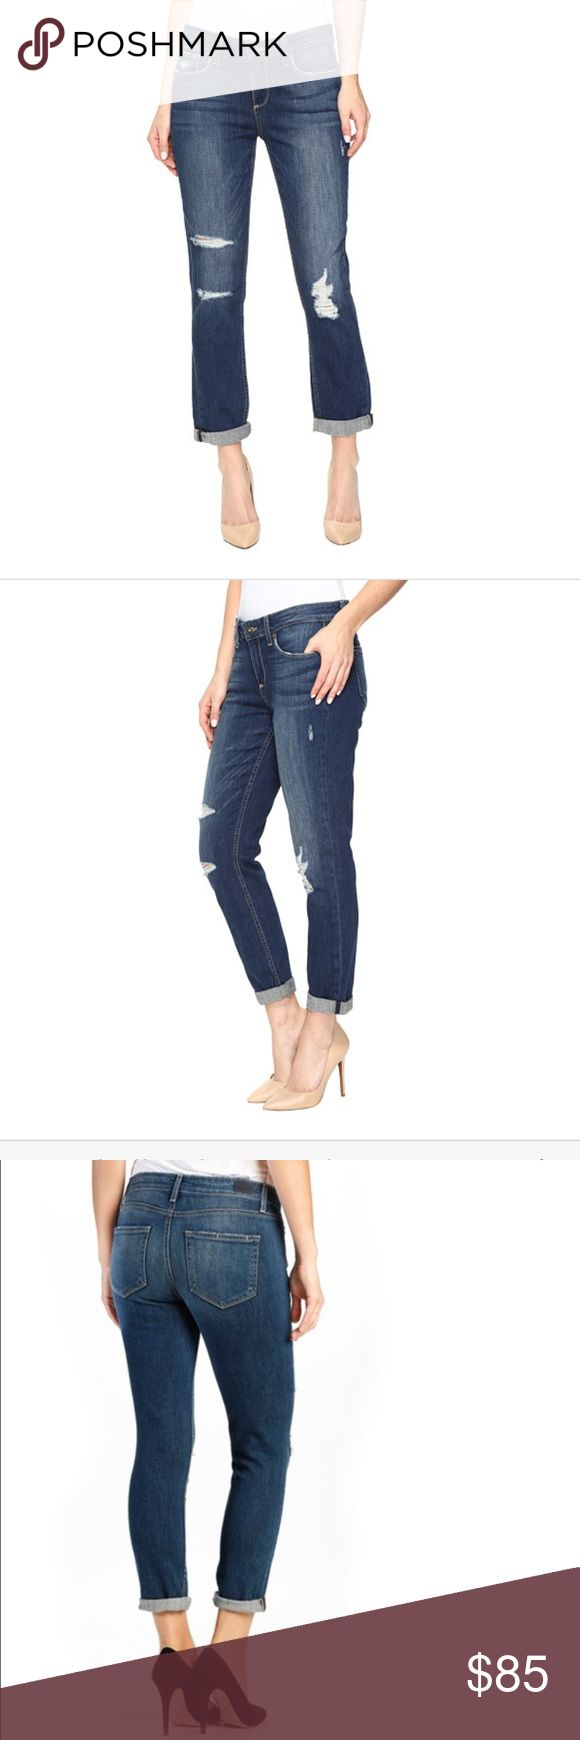 SUPER SALE‼️NEW Paige 👖 The Anabelle Slim The Anabelle Slim is a mid rise jean with a slimmer boyfriend silhouette. Five-pocket style and rolled leg opening. Lightly faded, dark indigo wash finished with an easy destructed pattern concentrated at the knees. Zipper fly and button closure. 98% cotton, 2% elastane. Machine wash cold, hang dry. Made in the U.S.A. and Imported. Paige Jeans Jeans